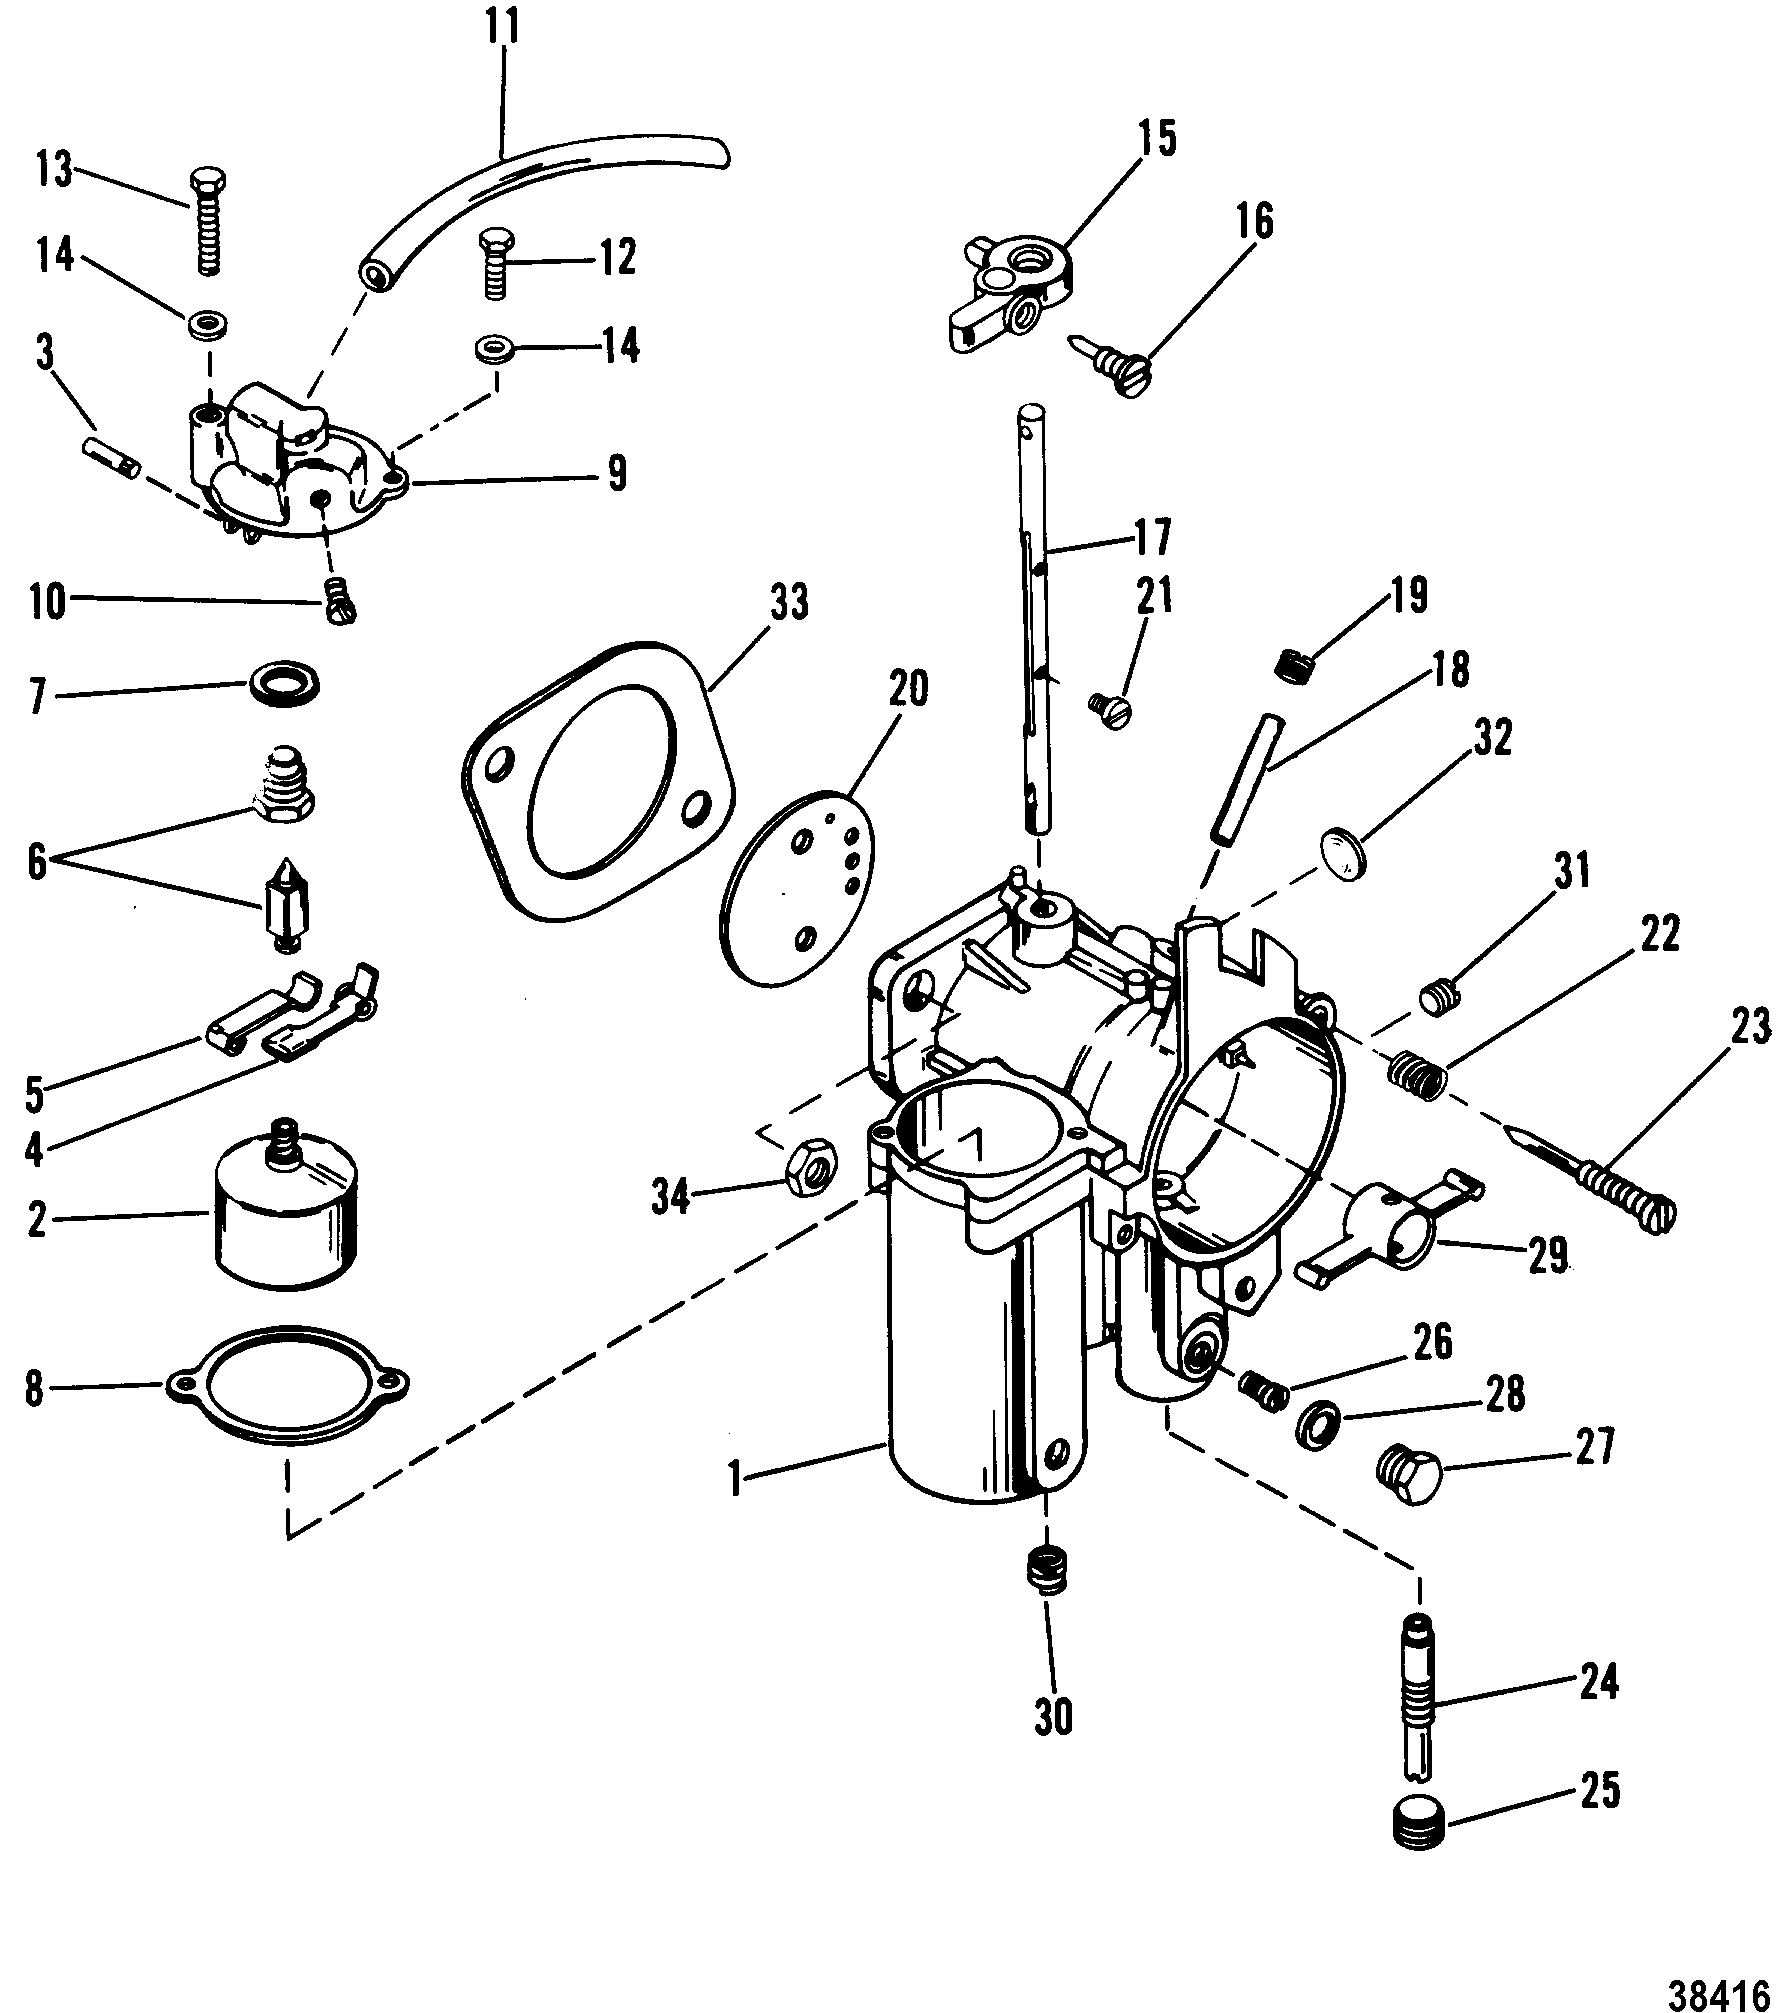 Show product wiring diagram 120 force outboard at wws5 ww w freeautoresponder